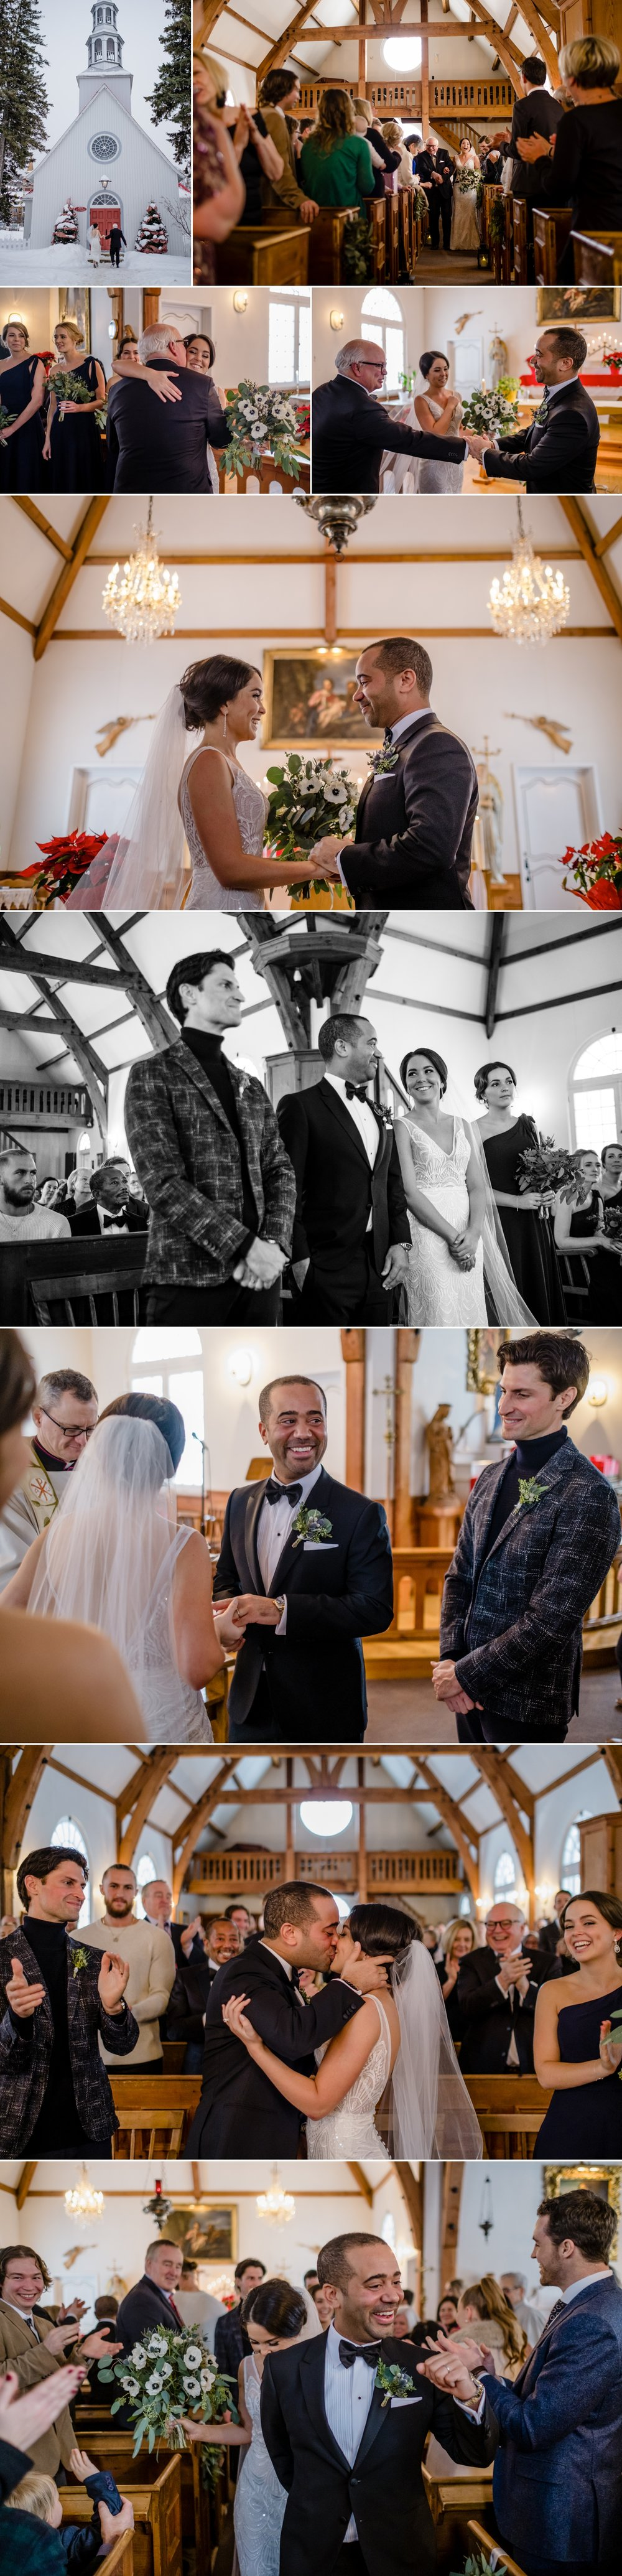 candid moments during a winter wedding ceremony at the chapelle saint bernard in mont tremblant quebec